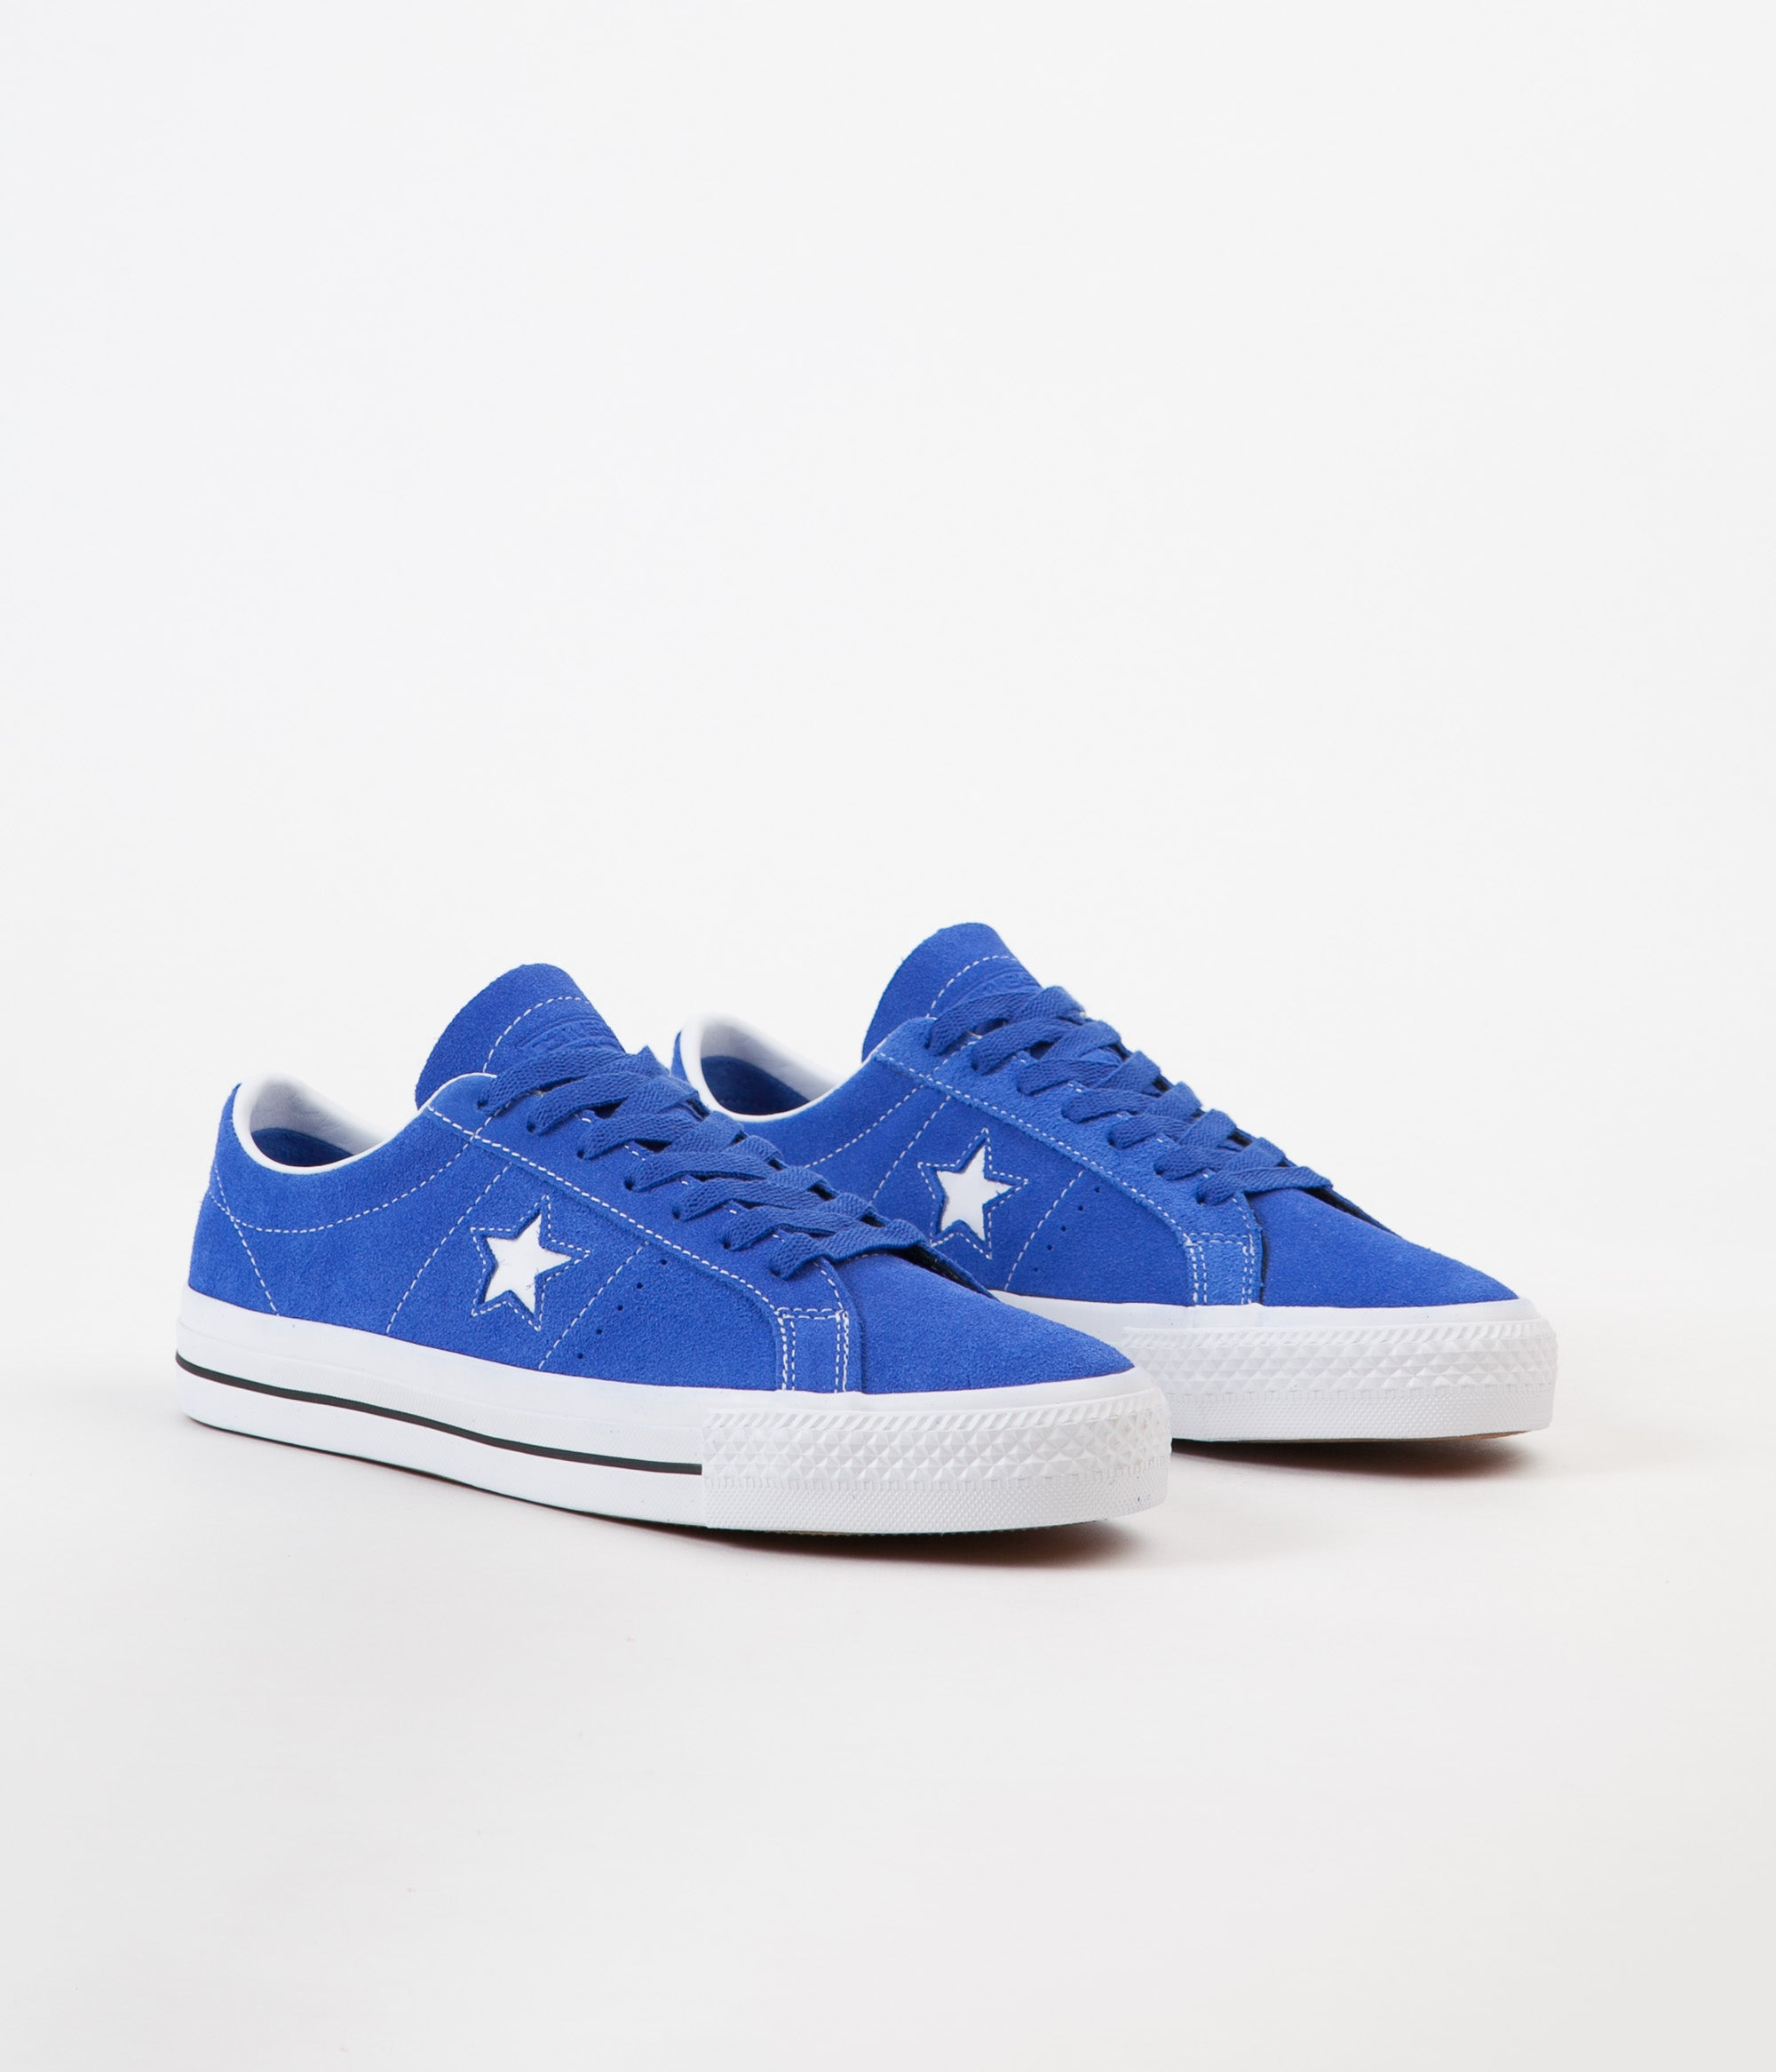 99f8f304fbadb8 ... Converse One Star Pro Ox Shoes - Hyper Royal   White   Black ...